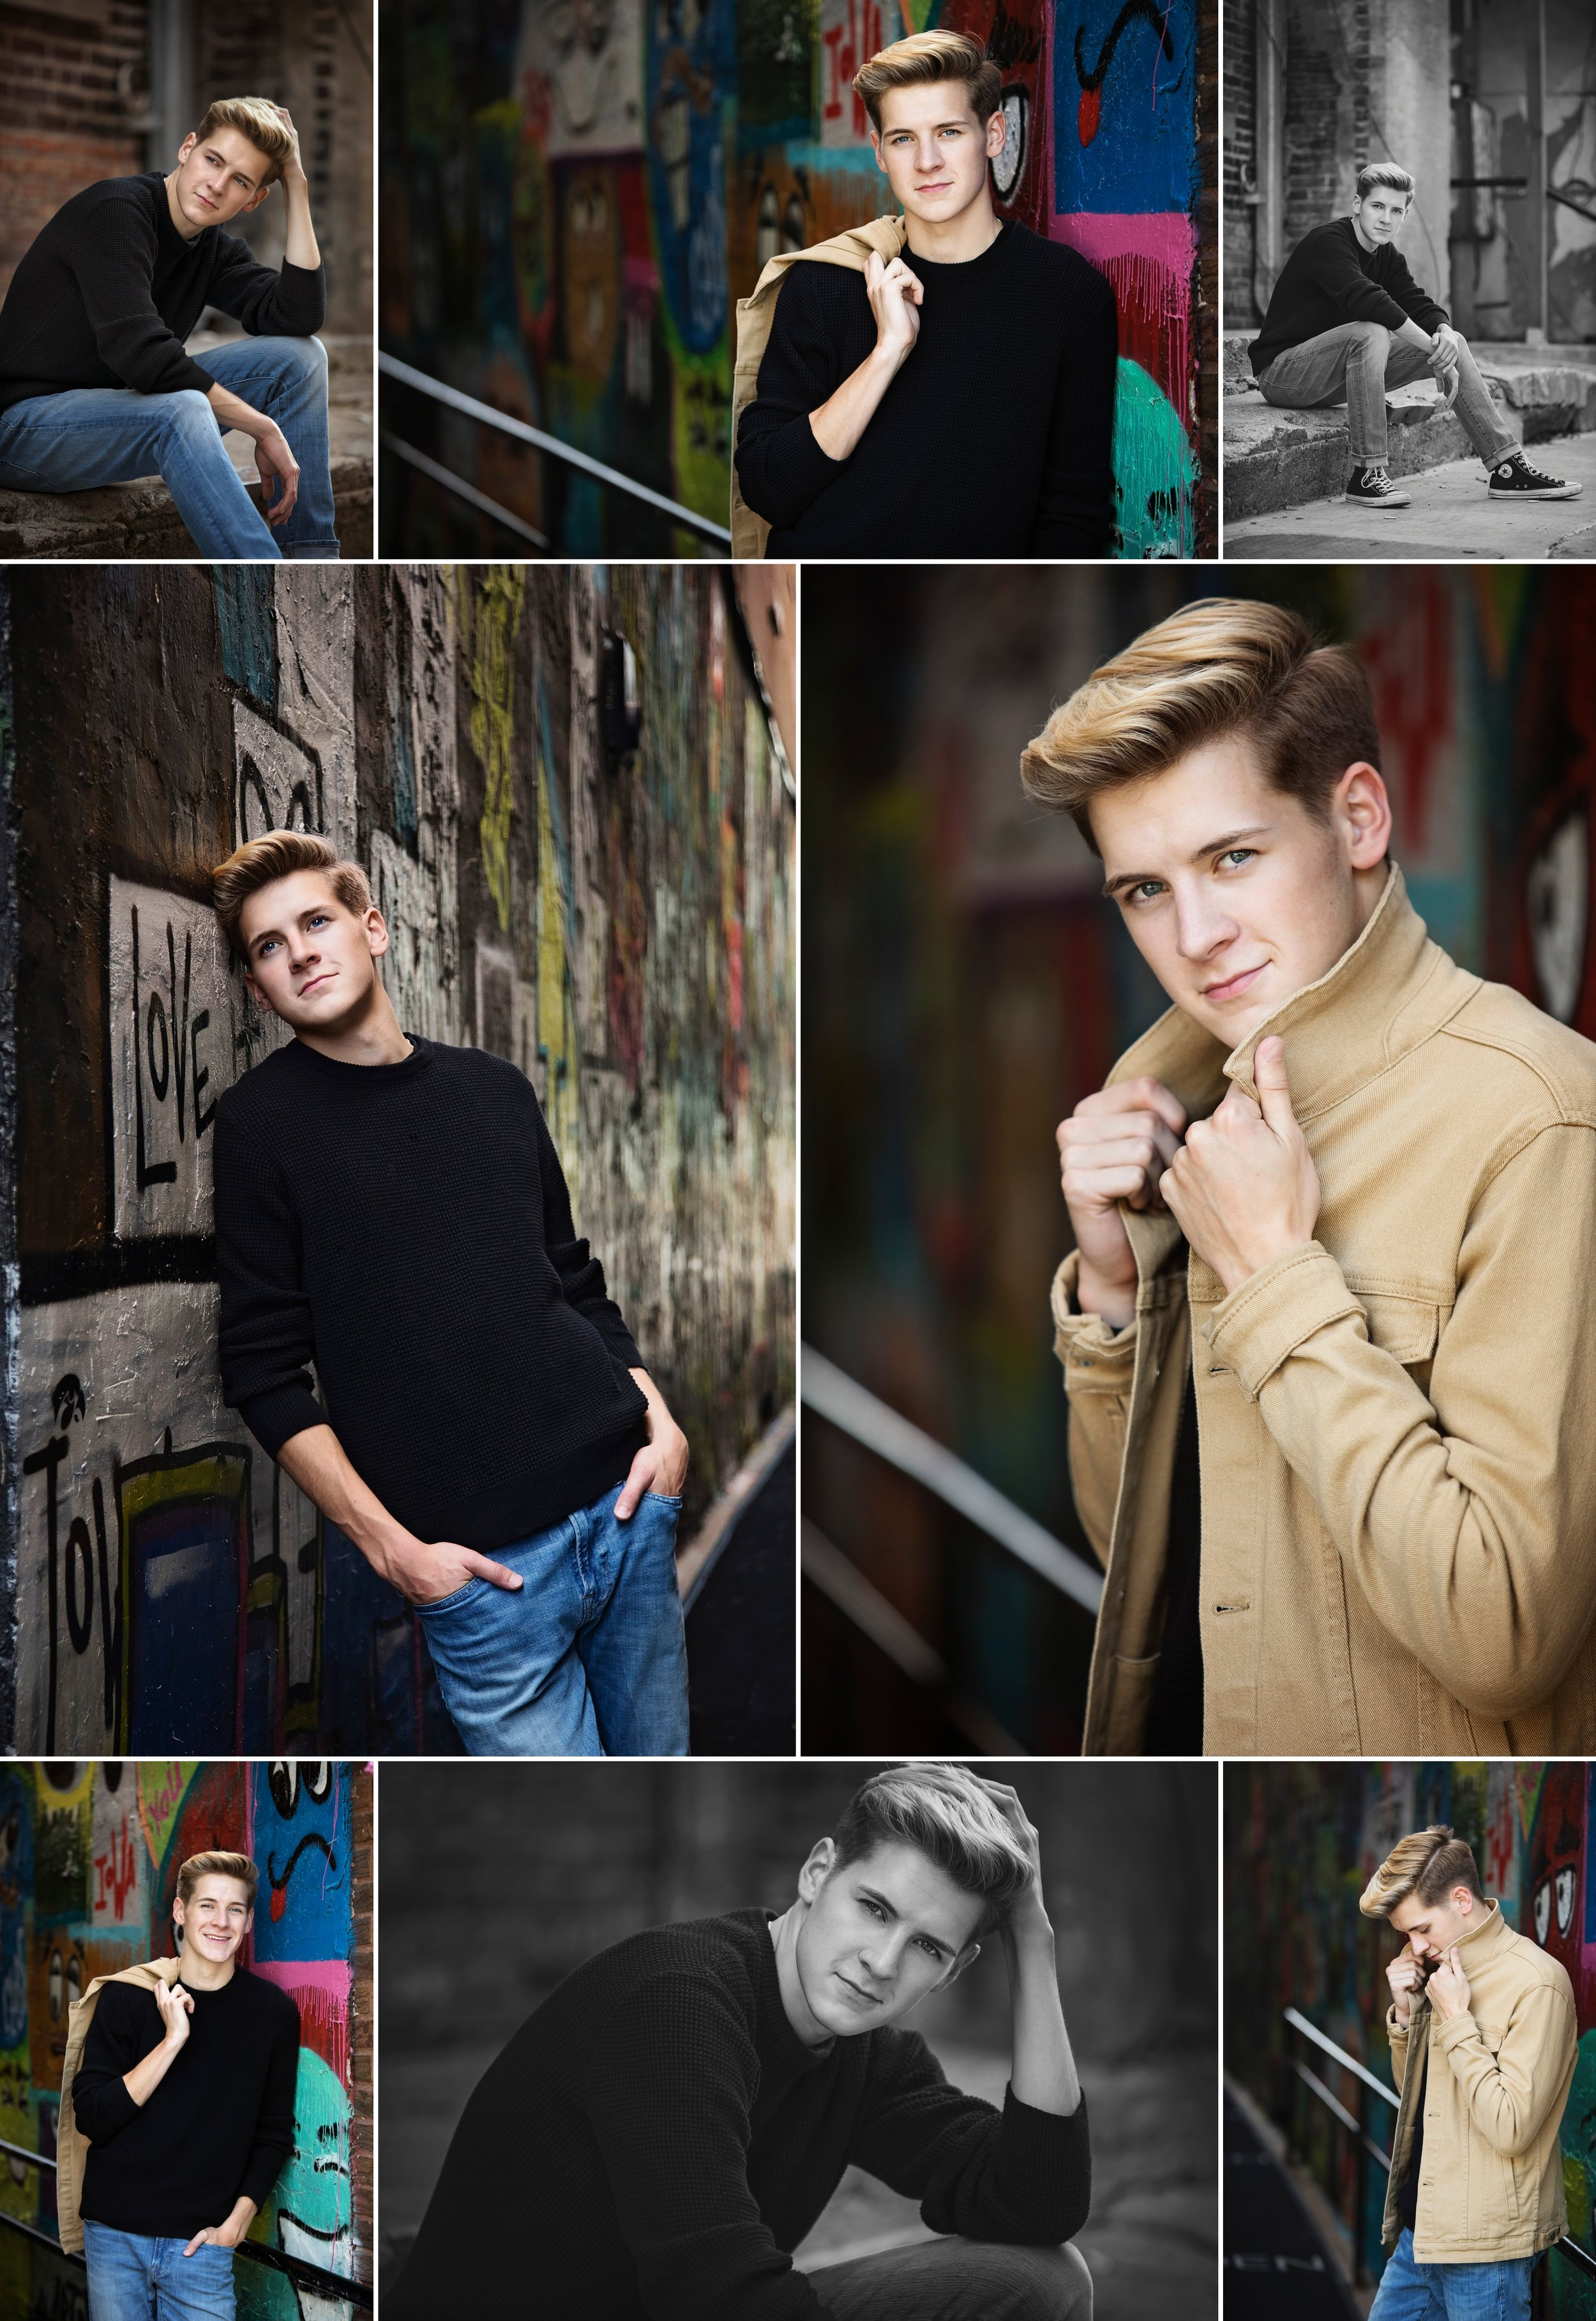 iowa-city-senior-photographer 4.jpg